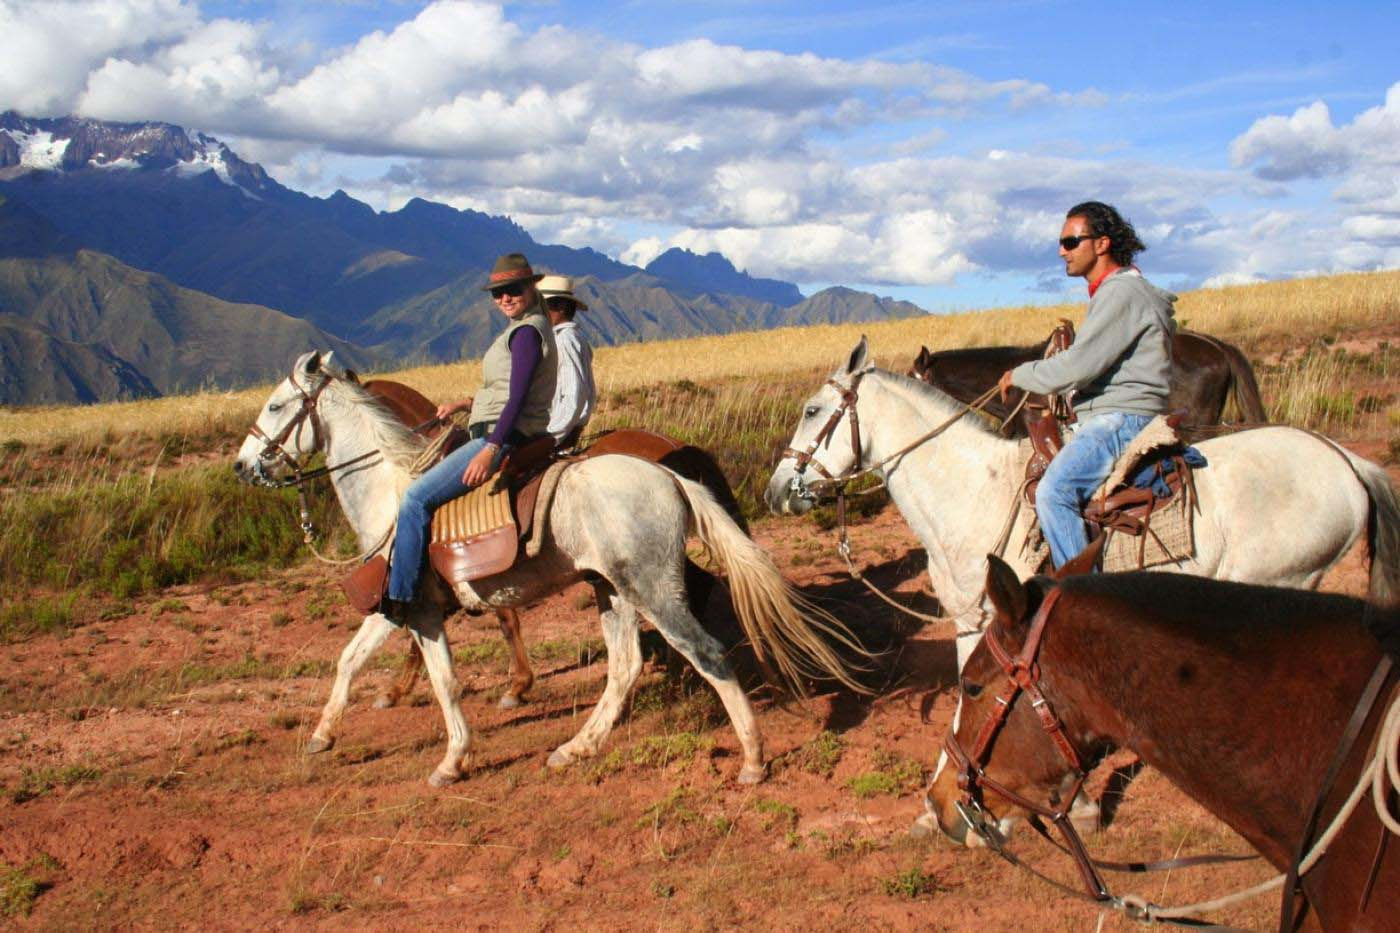 Excursion en caballo Cusco